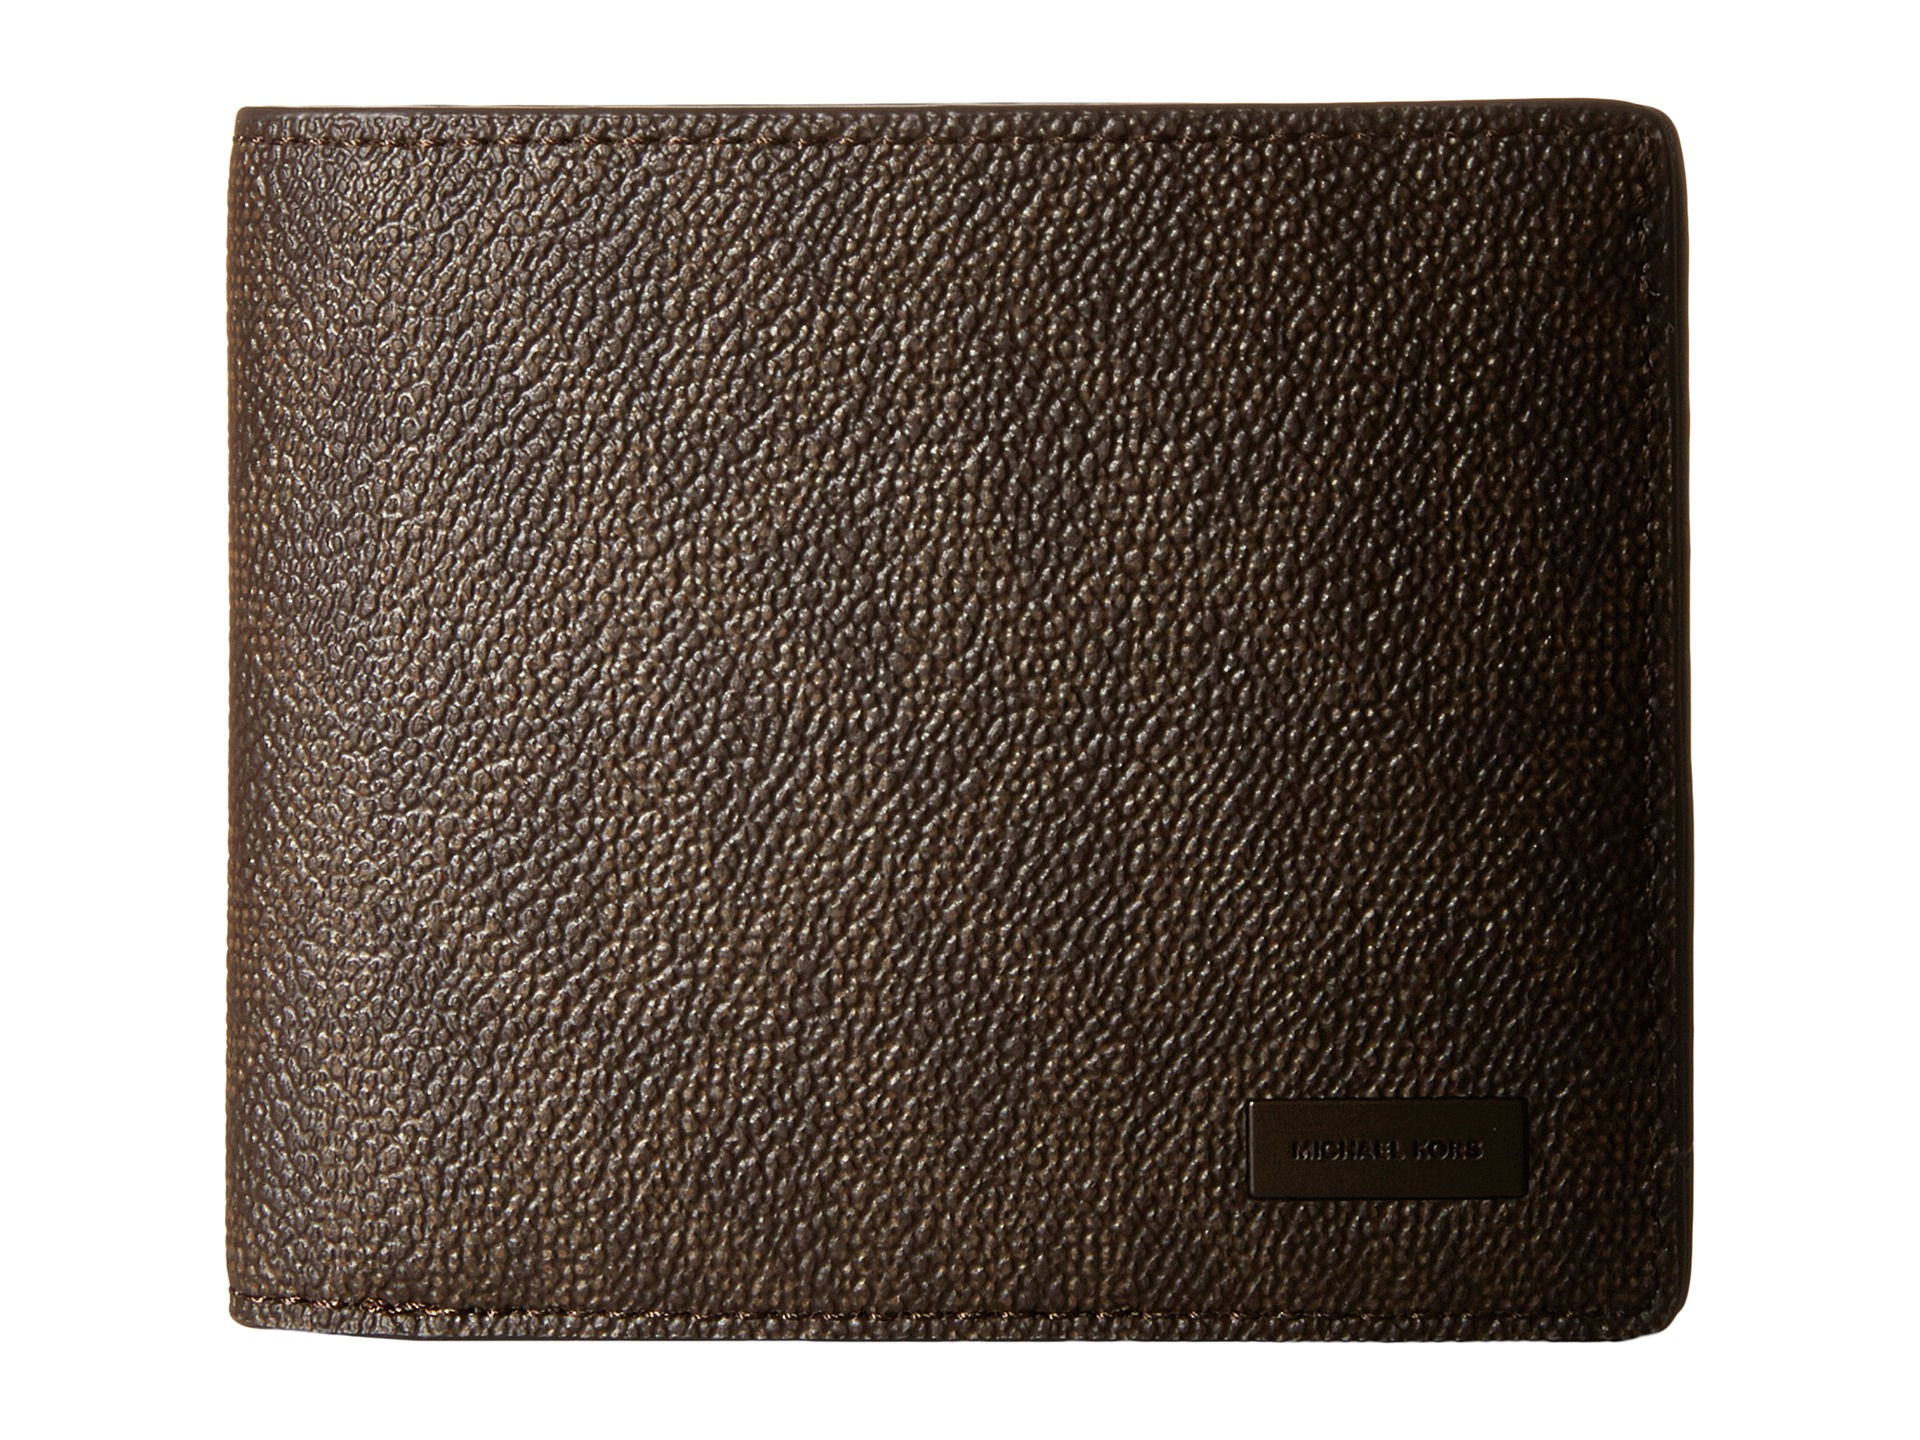 ad5deafc6ed9d Lyst - Michael Kors Jet Set Billfold W Passcase in Brown for Men